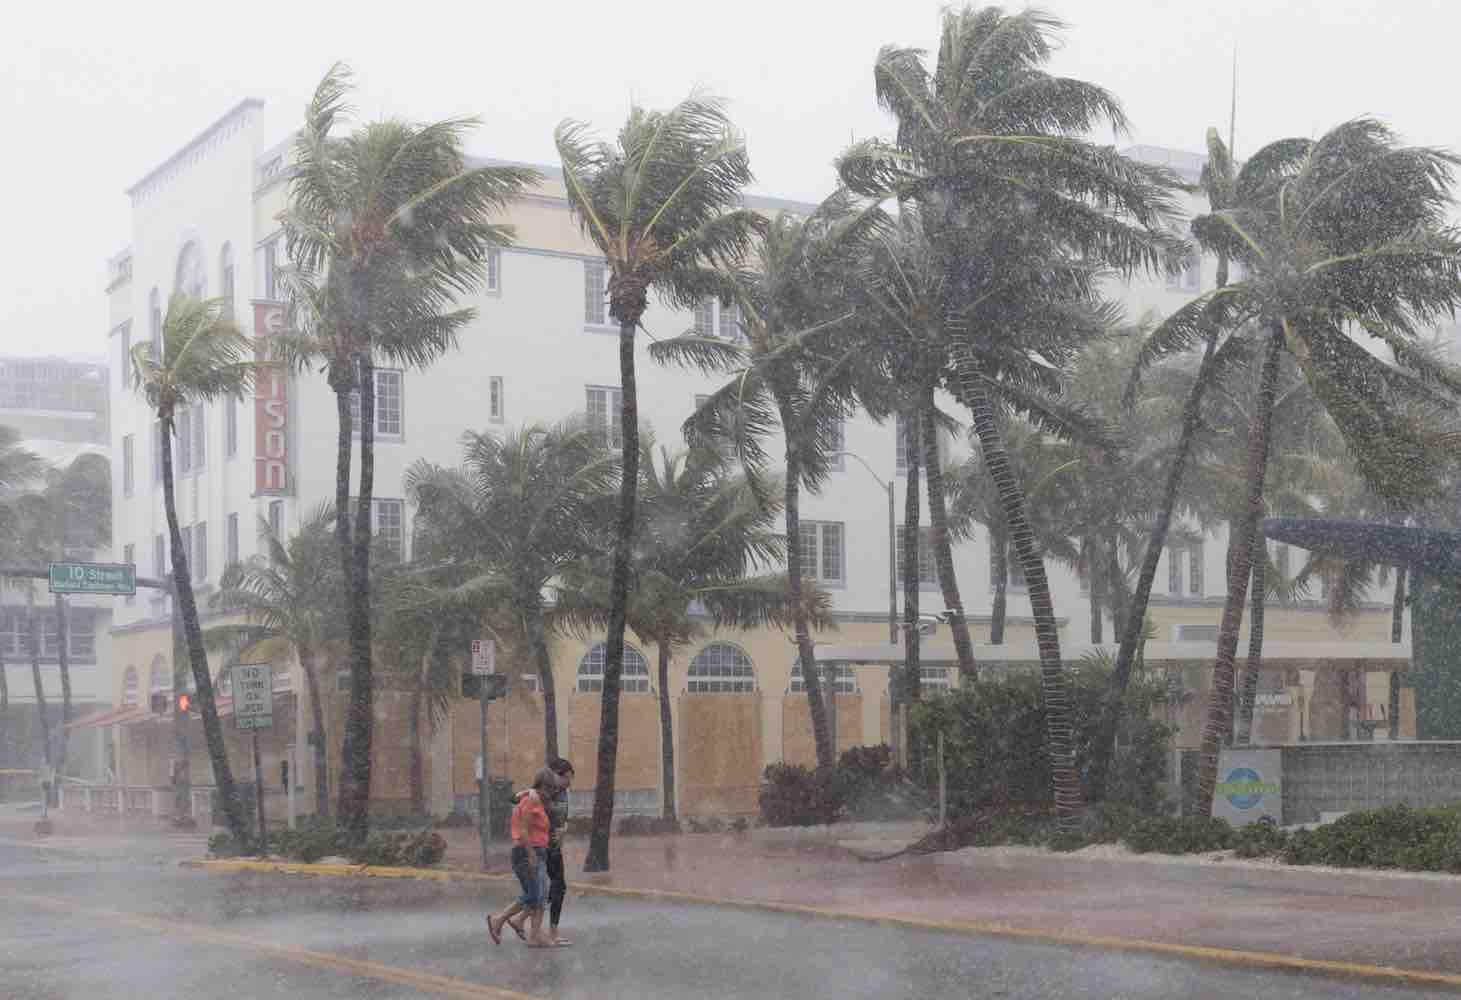 "<div class=""meta image-caption""><div class=""origin-logo origin-image kgo""><span>kgo</span></div><span class=""caption-text"">People walk down the street as winds and rain begin to hit as outer bands of Hurricane Irma arrive in Miami Beach, Florida, September 9, 2017. (SAUL LOEB/AFP/Getty)</span></div>"